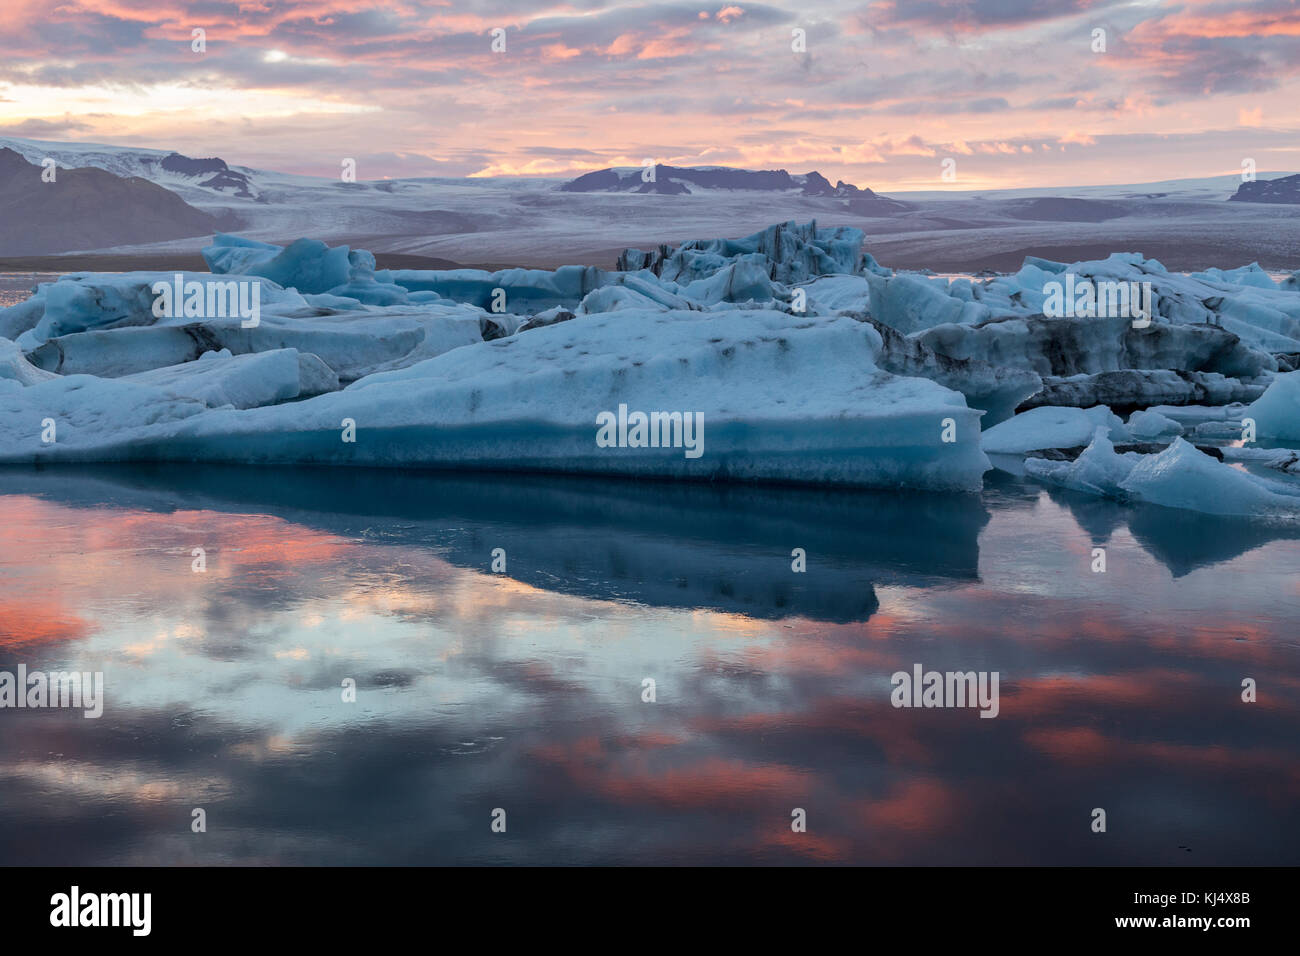 Glacier lagoon on the south east coast of Iceland - Stock Image